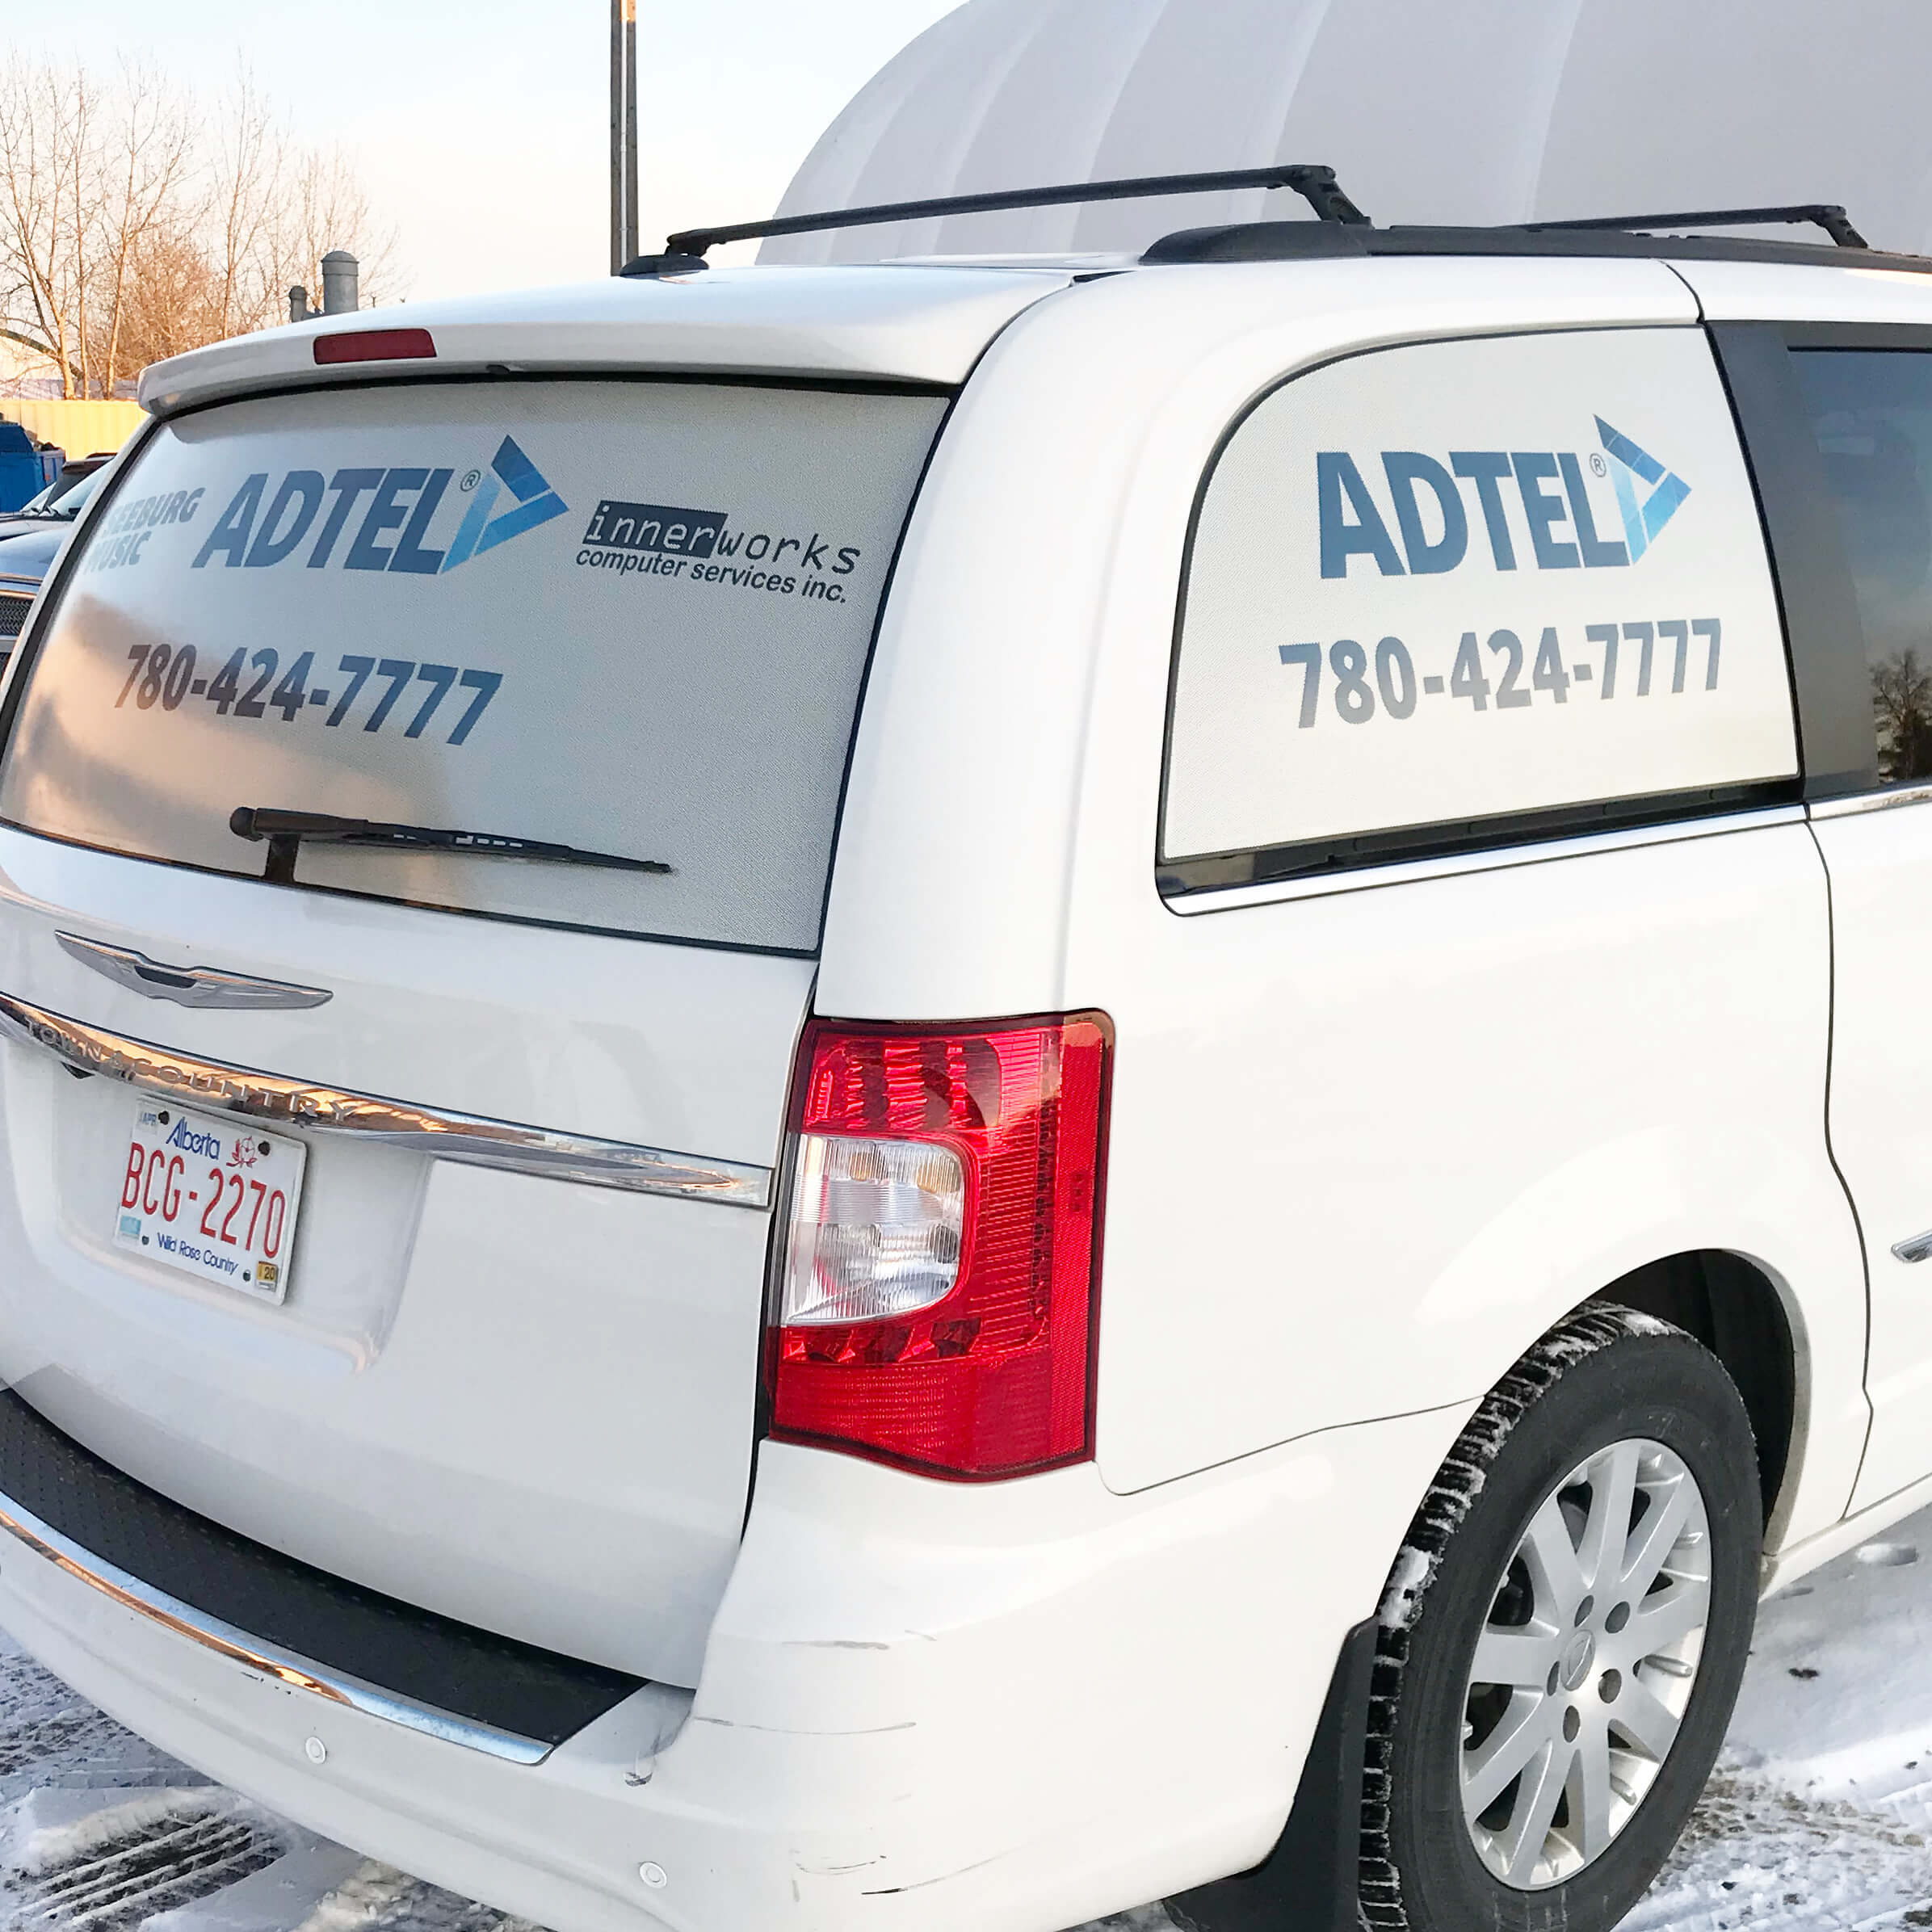 ADTEL commercial vehicle wraps for advertisement in Edmonton, AB